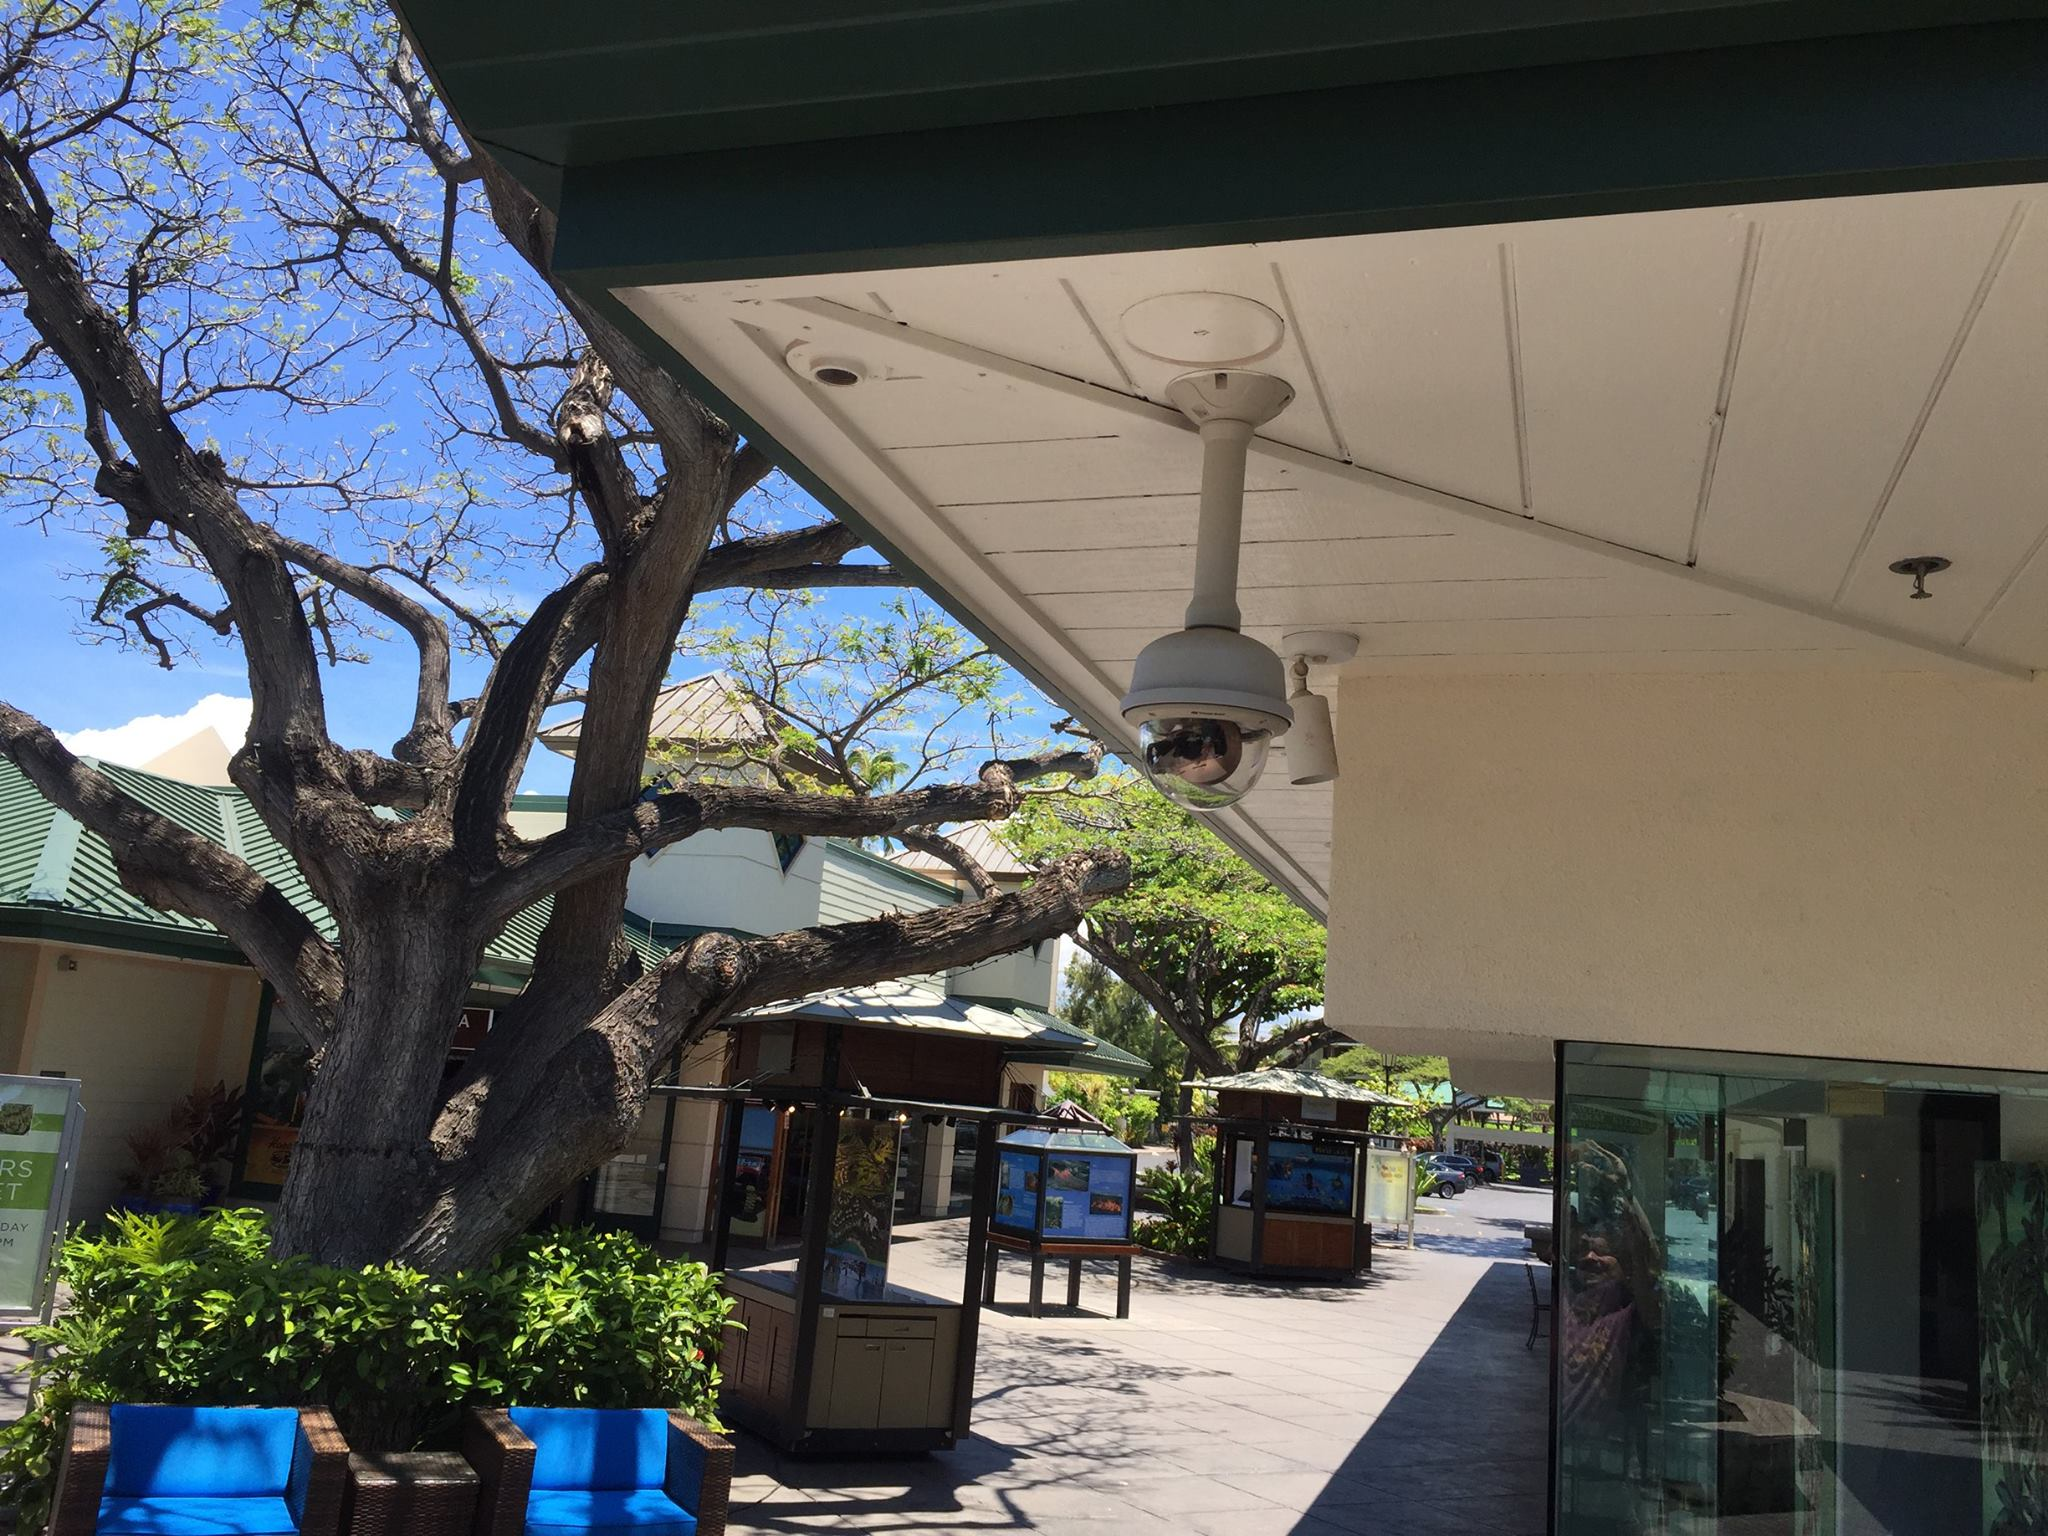 Kings' Shops, Waikoloa Village, Big Island, Hawaii